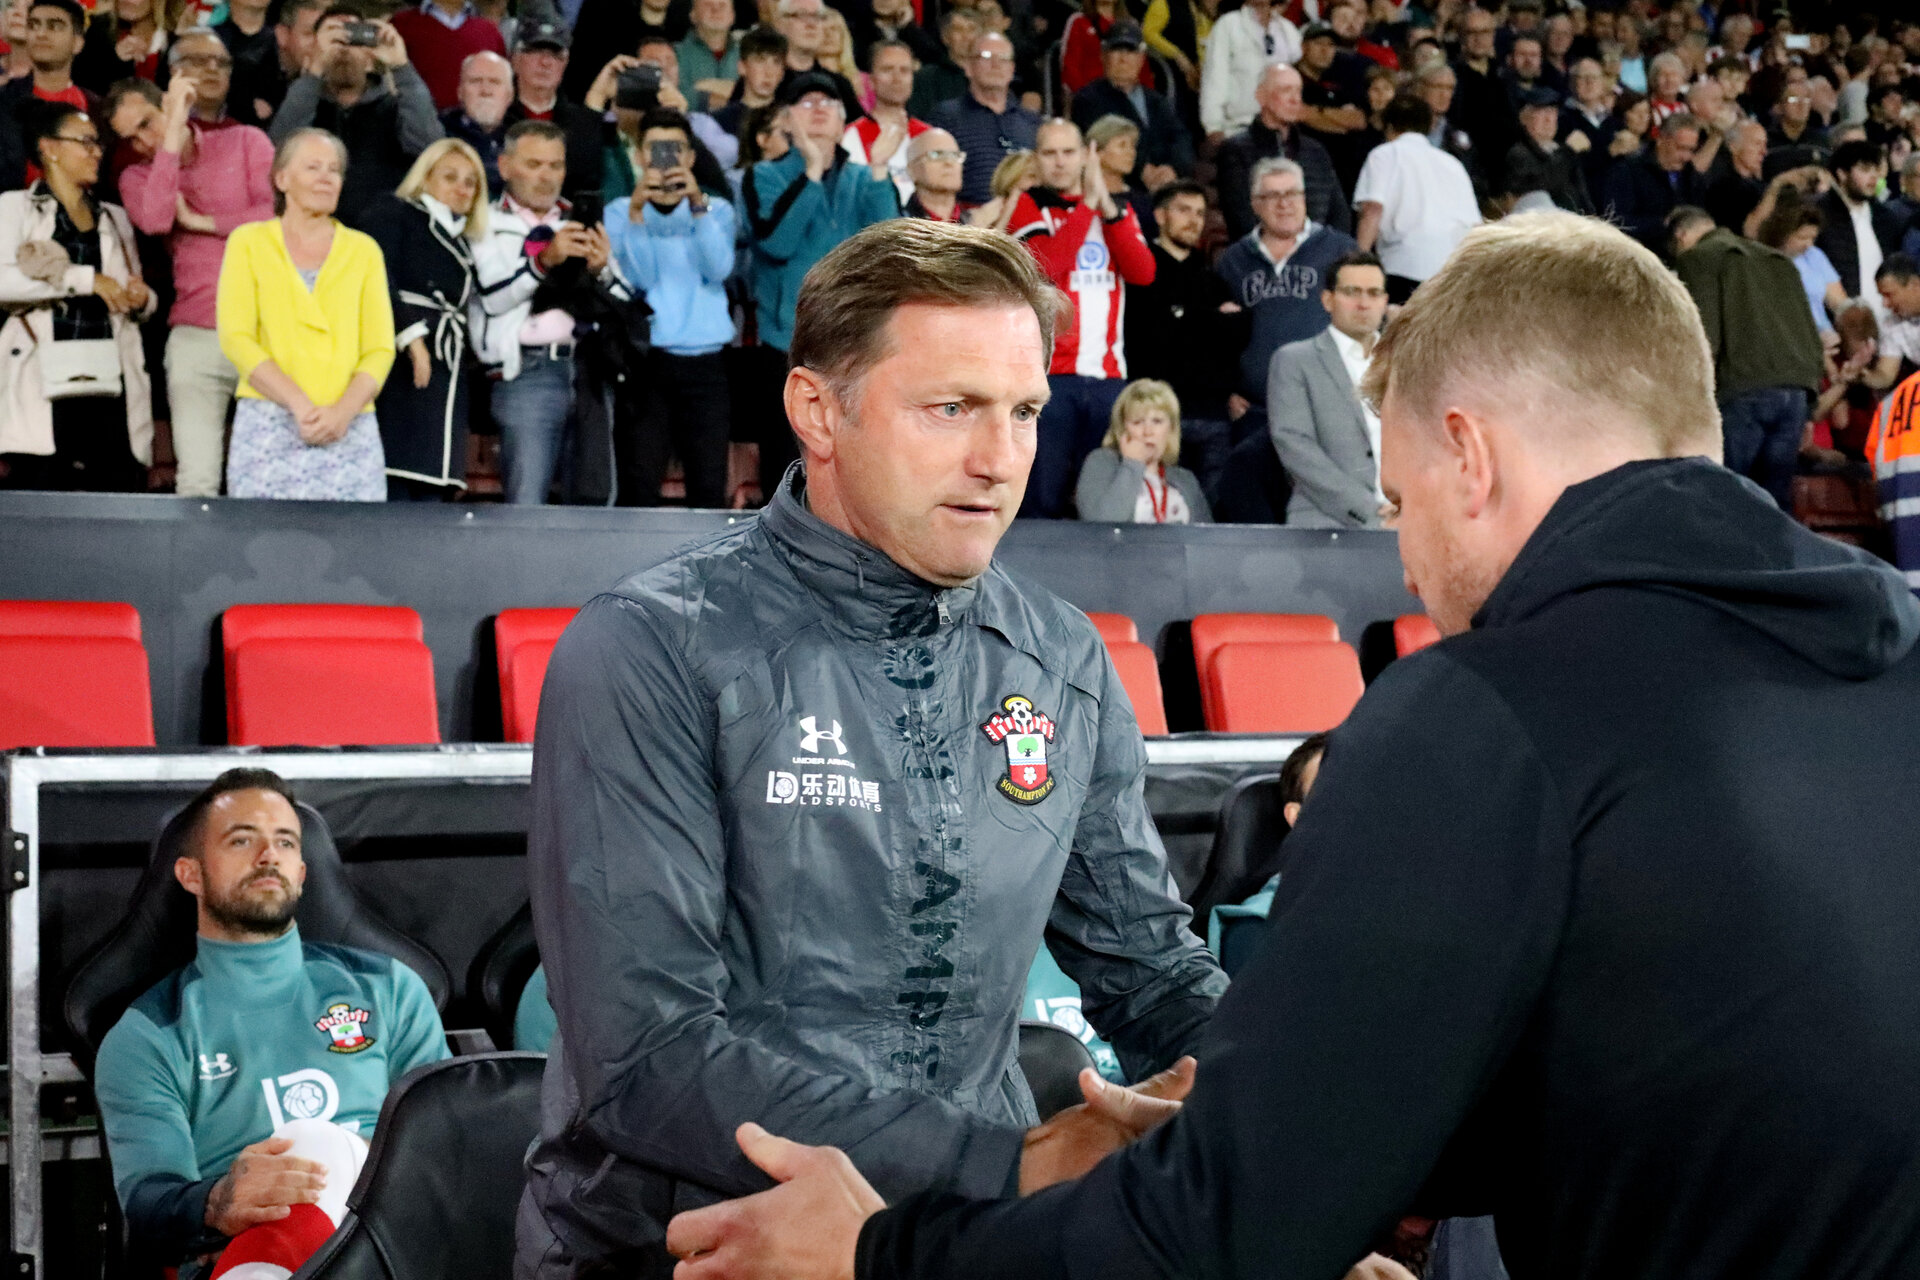 SOUTHAMPTON, ENGLAND - SEPTEMBER 20: Ralph Hasenhüttl and Eddie Howe during the Premier League match between Southampton FC and AFC Bournemouth at St Mary's Stadium on September 21, 2019 in Southampton, United Kingdom. (Photo by Chris Moorhouse/Southampton FC via Getty Images)